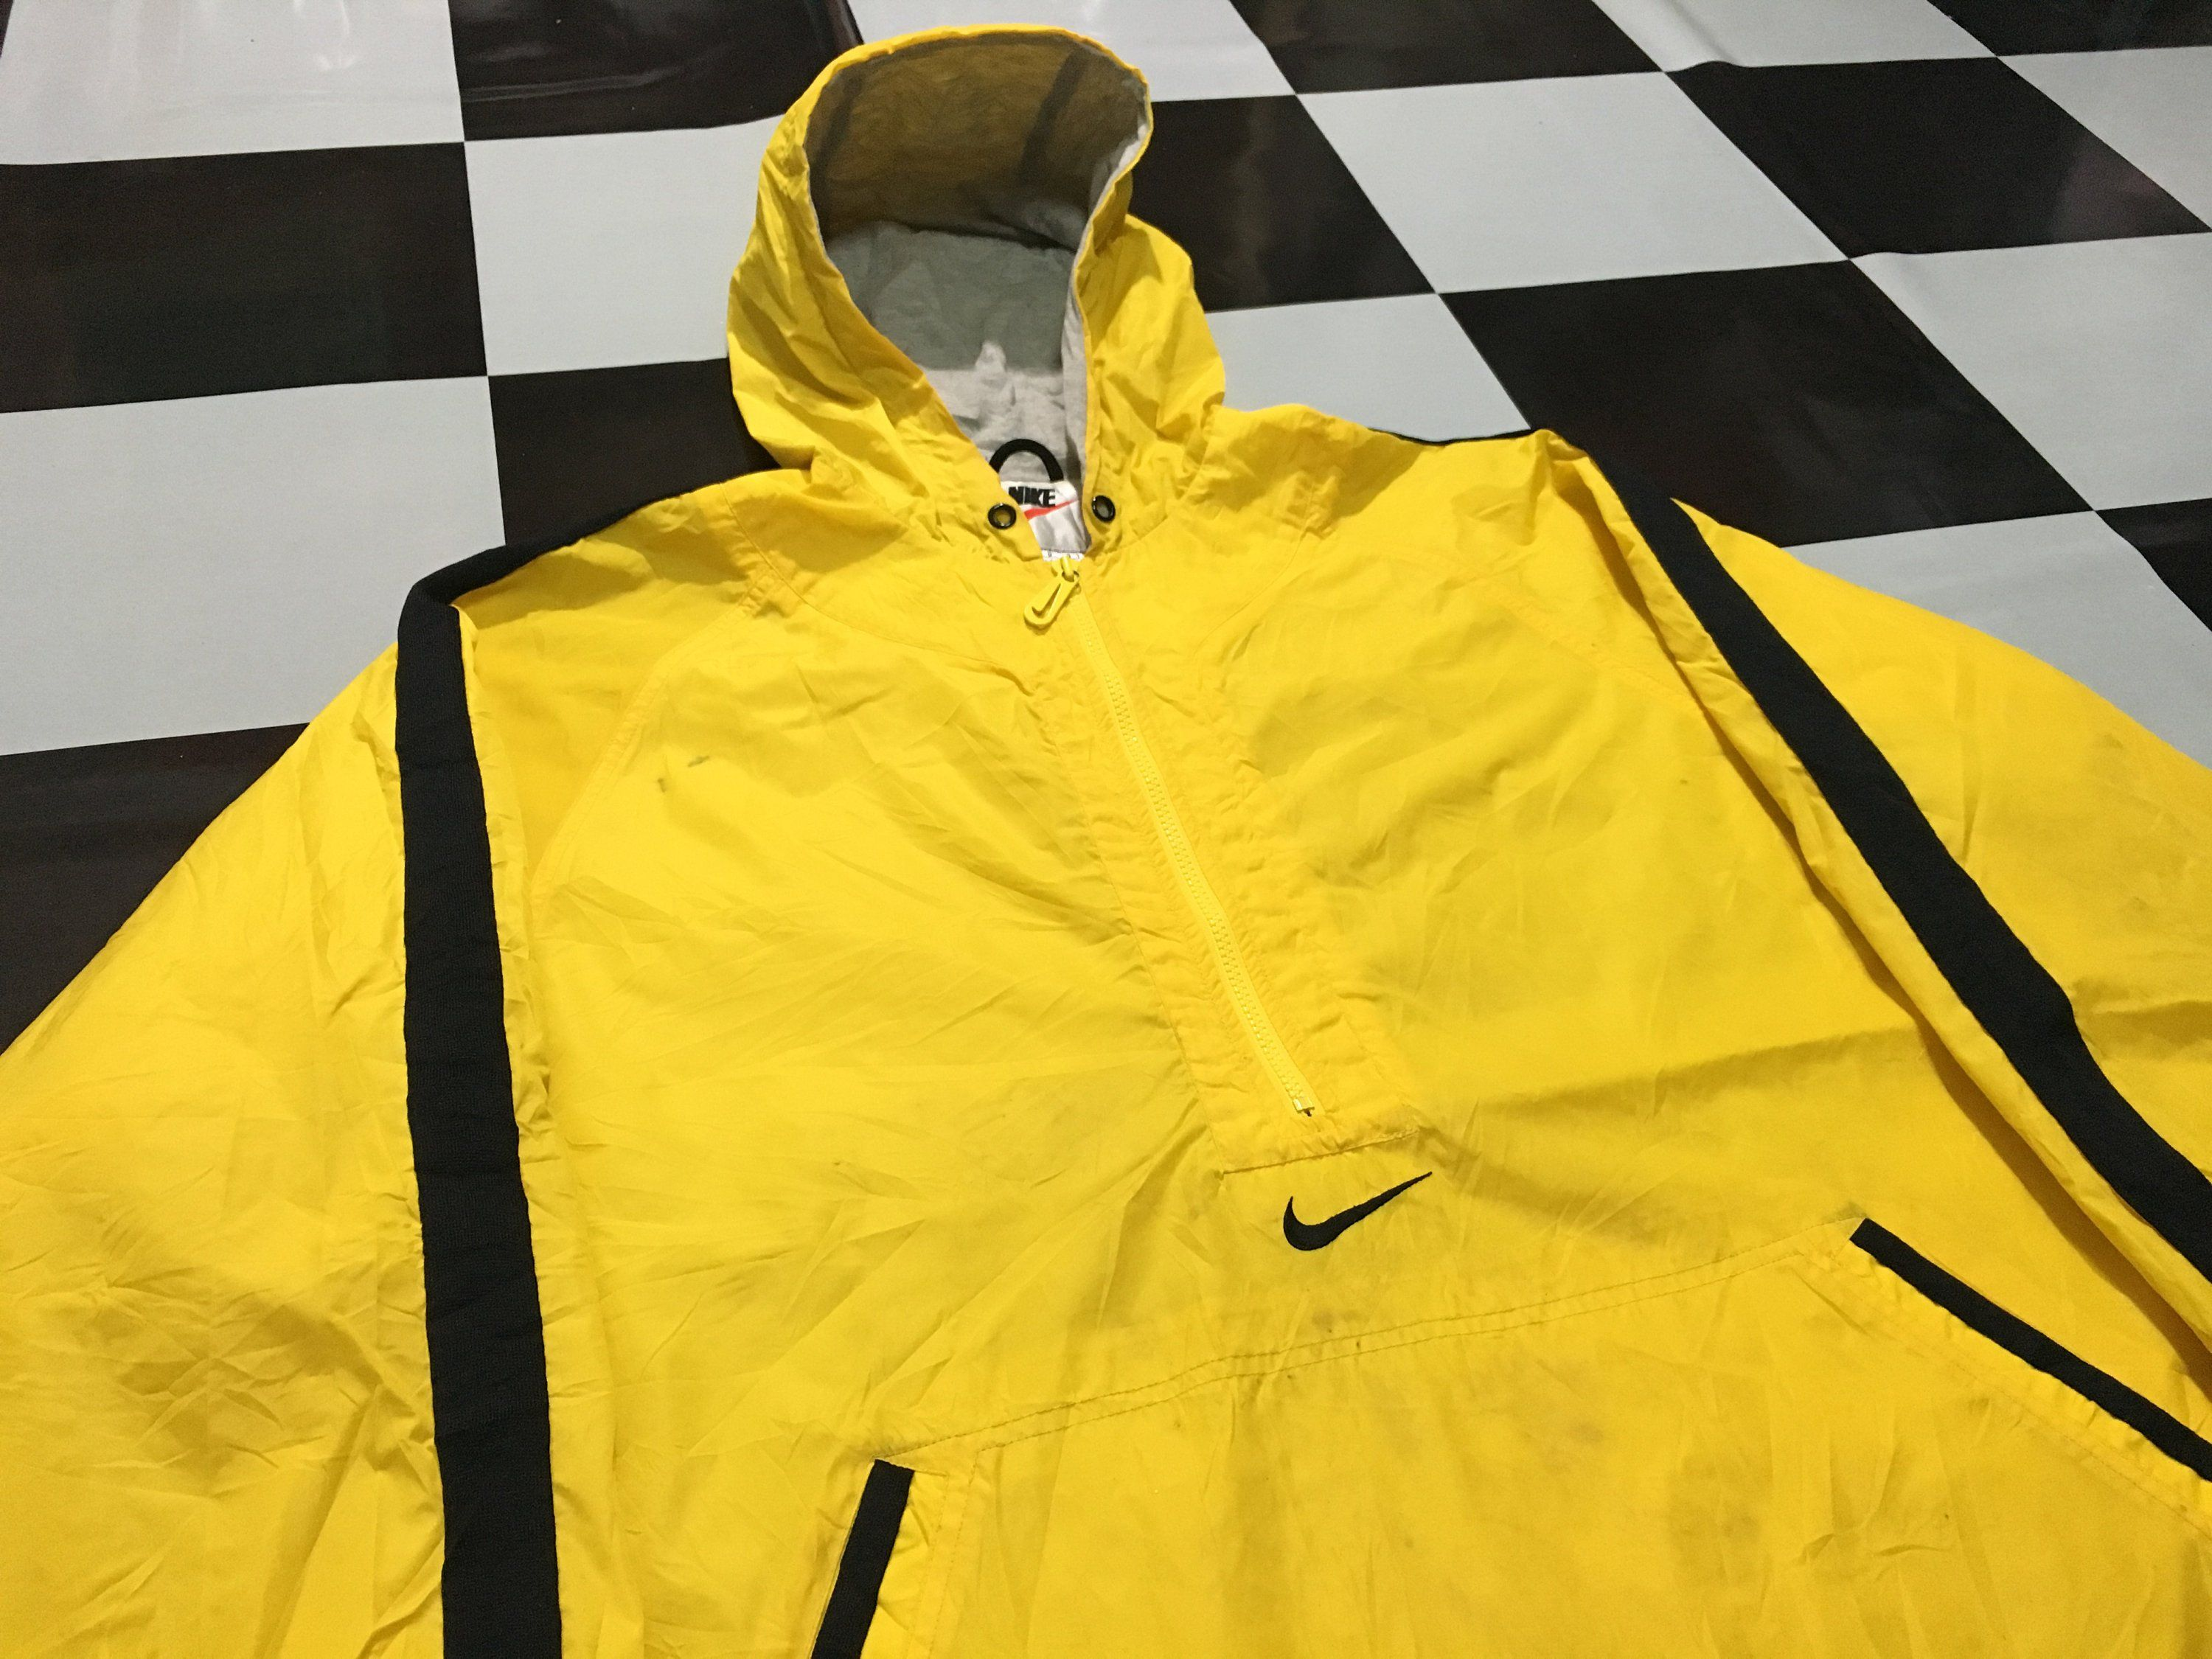 d85e8179254c Vintage Nike pullover half zip windbreaker anorak jacket swoosh logo  embroidered two tone jacket Yellow Black Size L Excellent condition by  AlivevintageShop ...